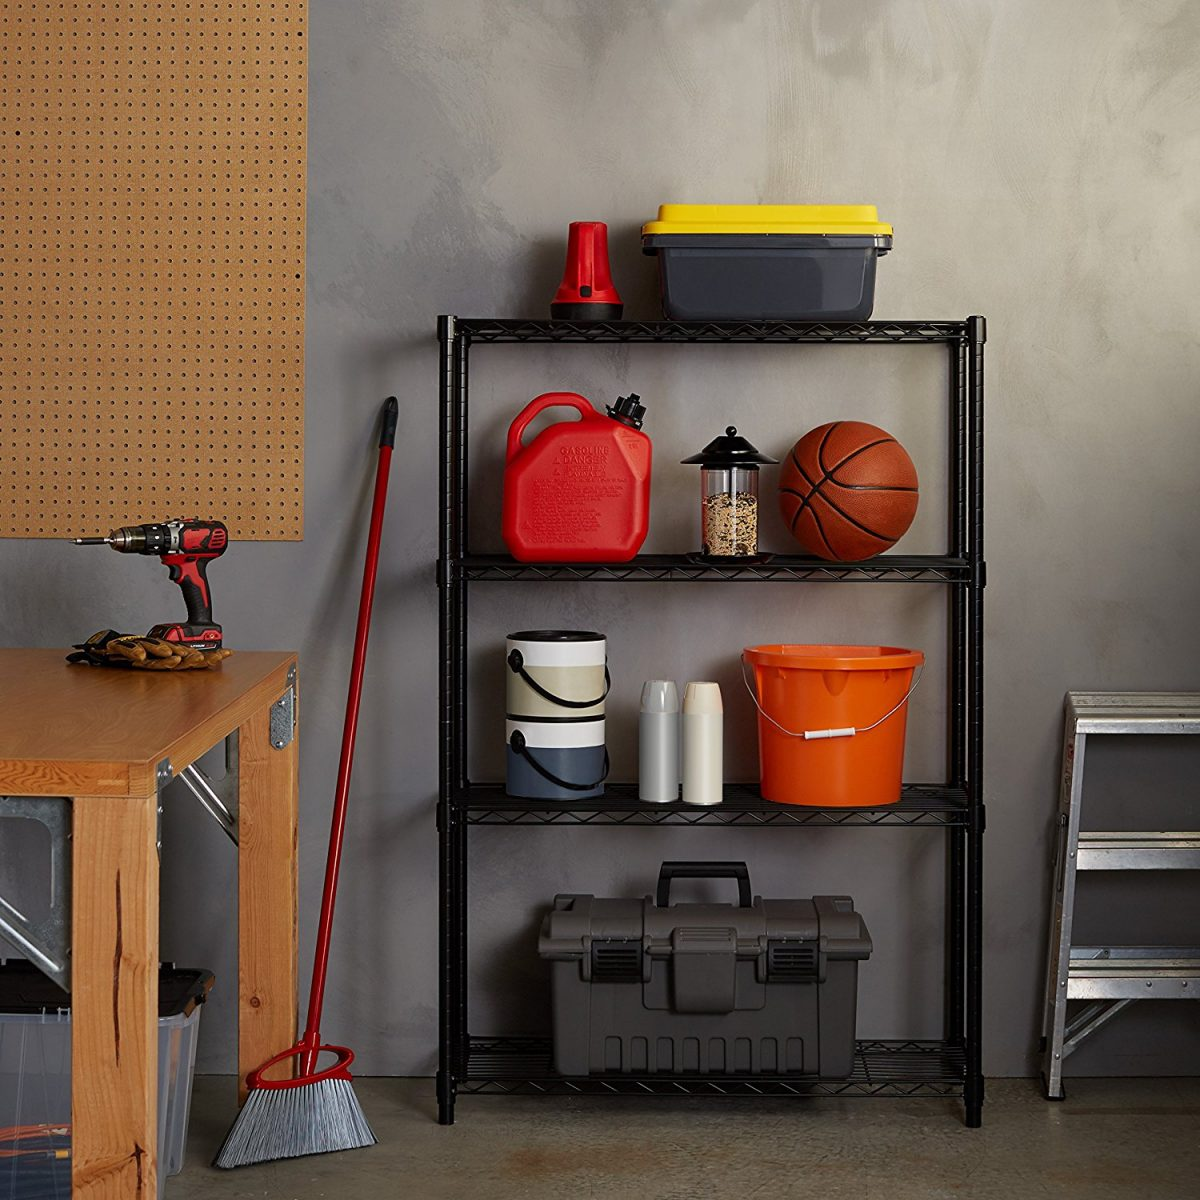 15 Most Clever Garage Hacks to Keep You Organized